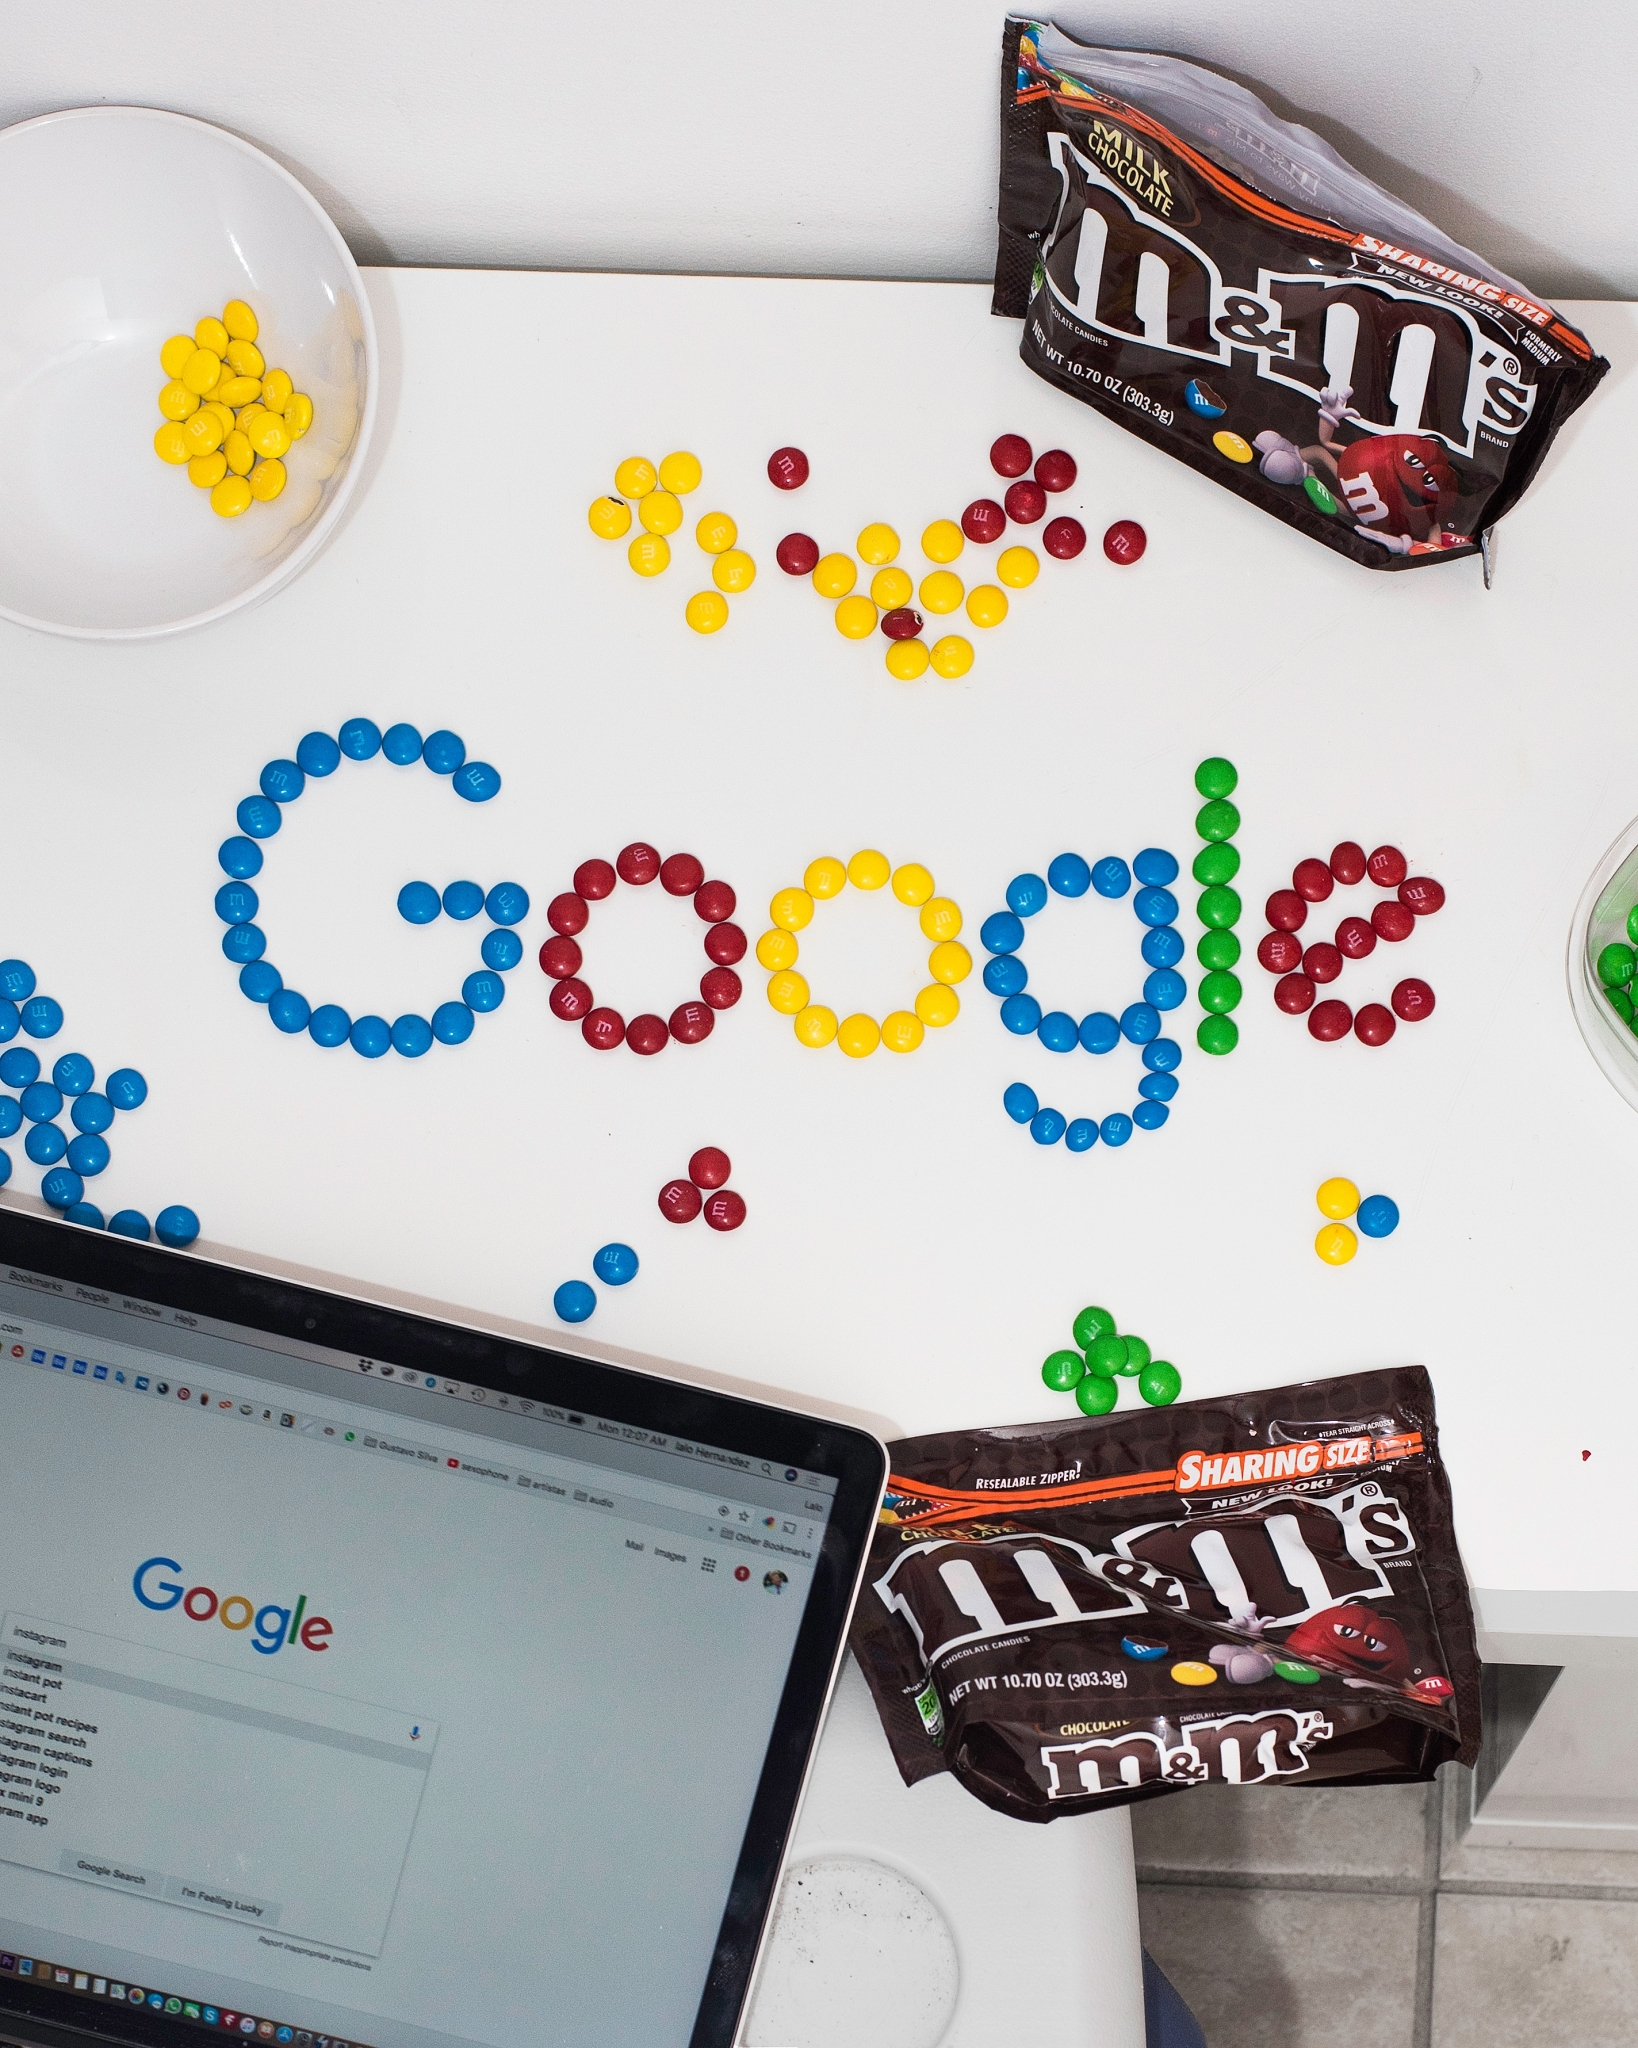 working at google spelled in m&ms